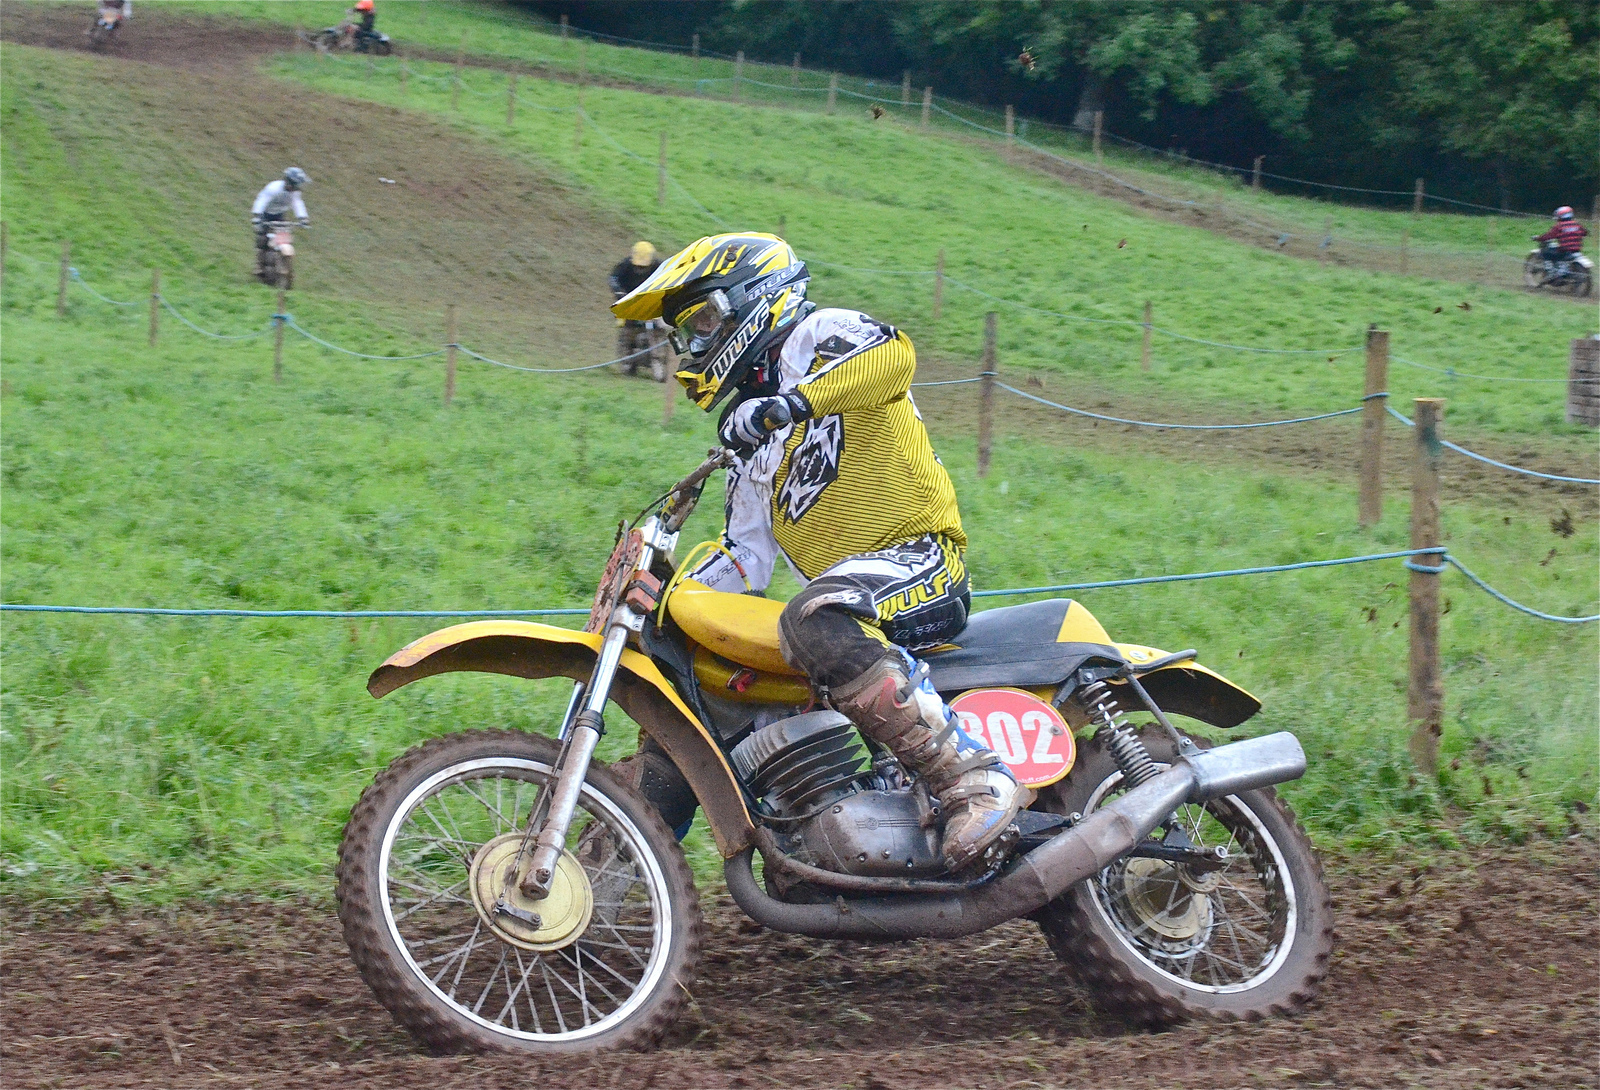 Llanthony Classic Scramble Photos September 2015 classicdirtbikerider.com..32